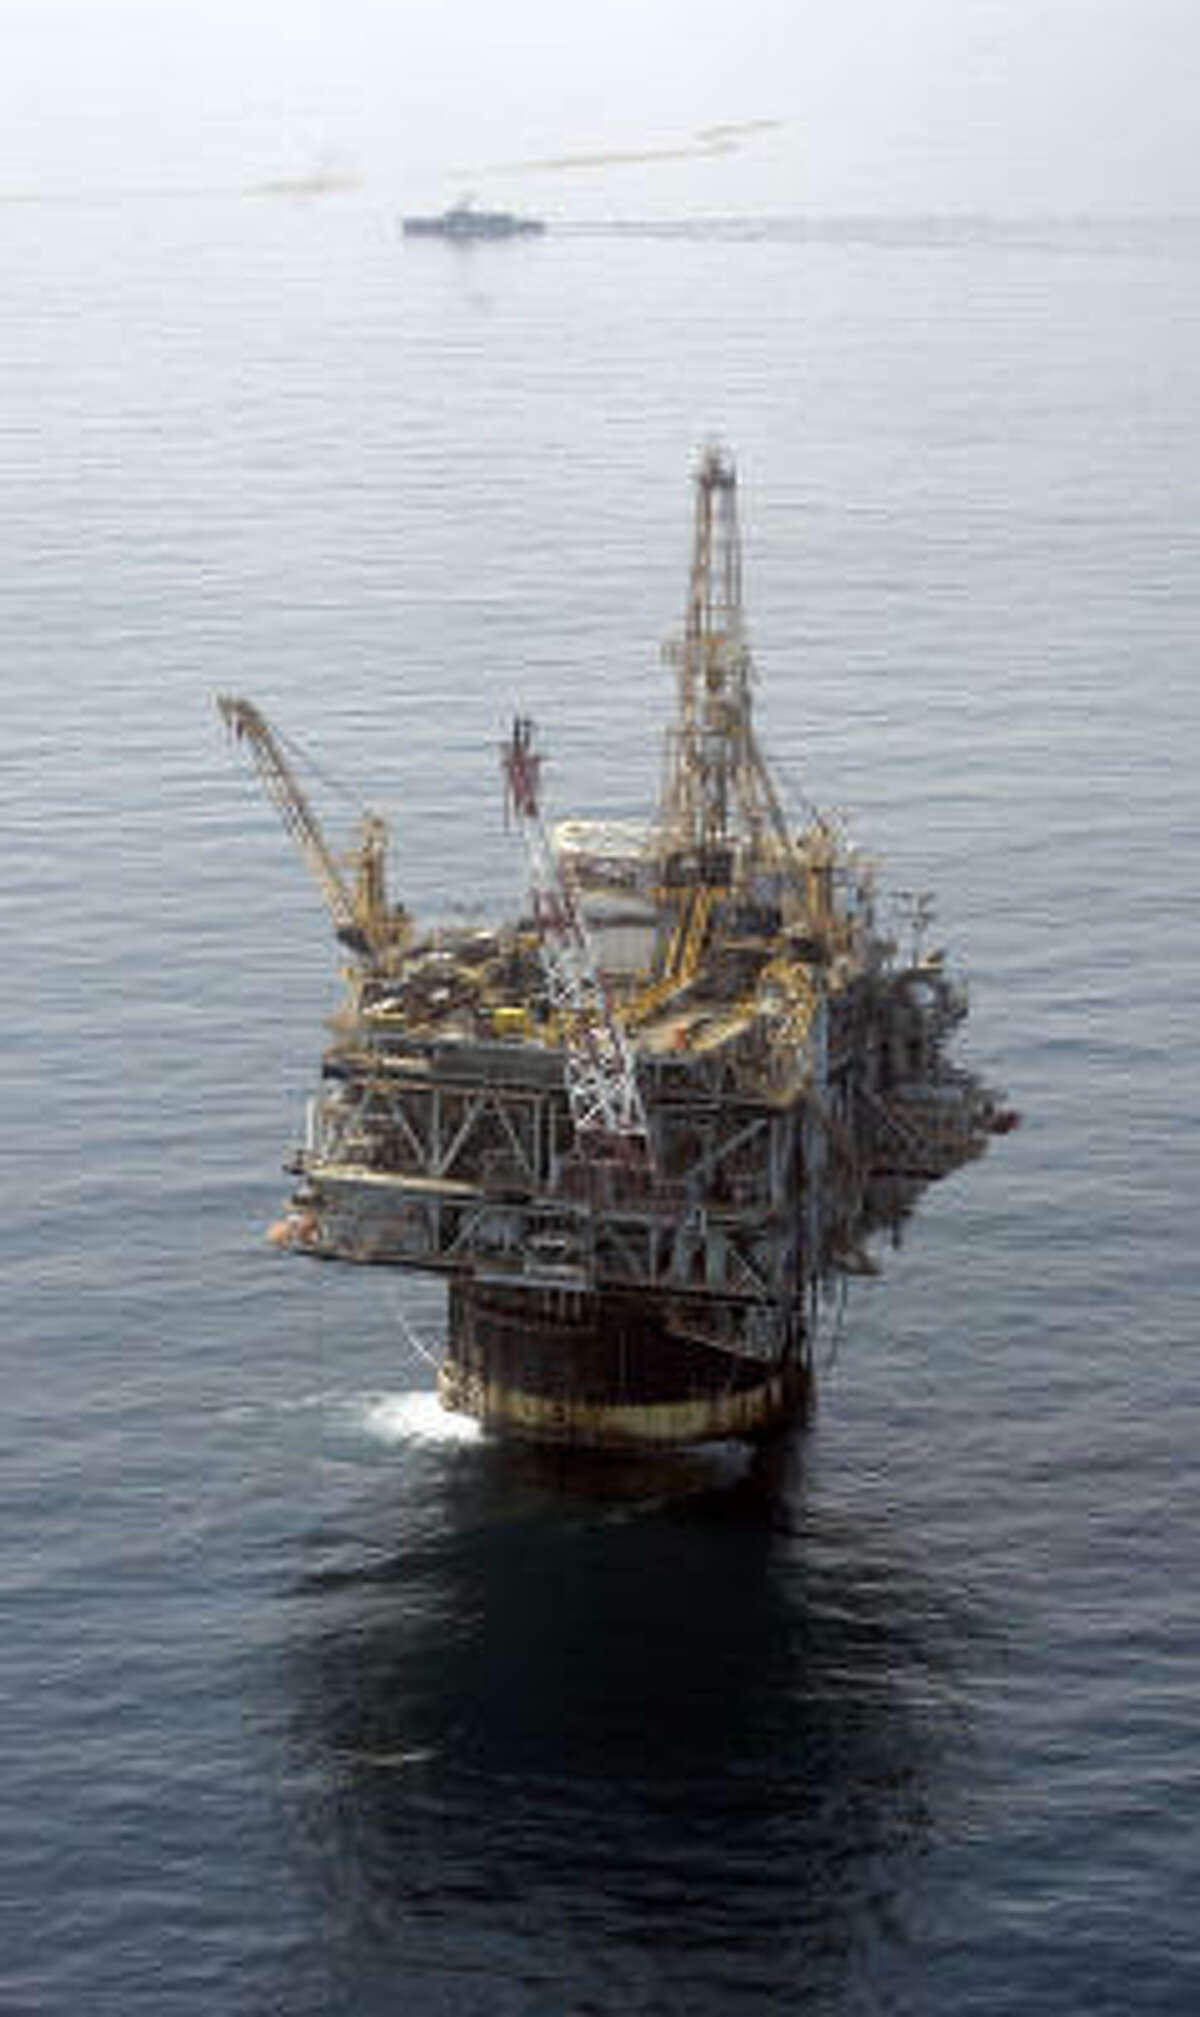 The Chevron Genesis Oil Rig Platform is seen in the Gulf of Mexico near New Orleans.